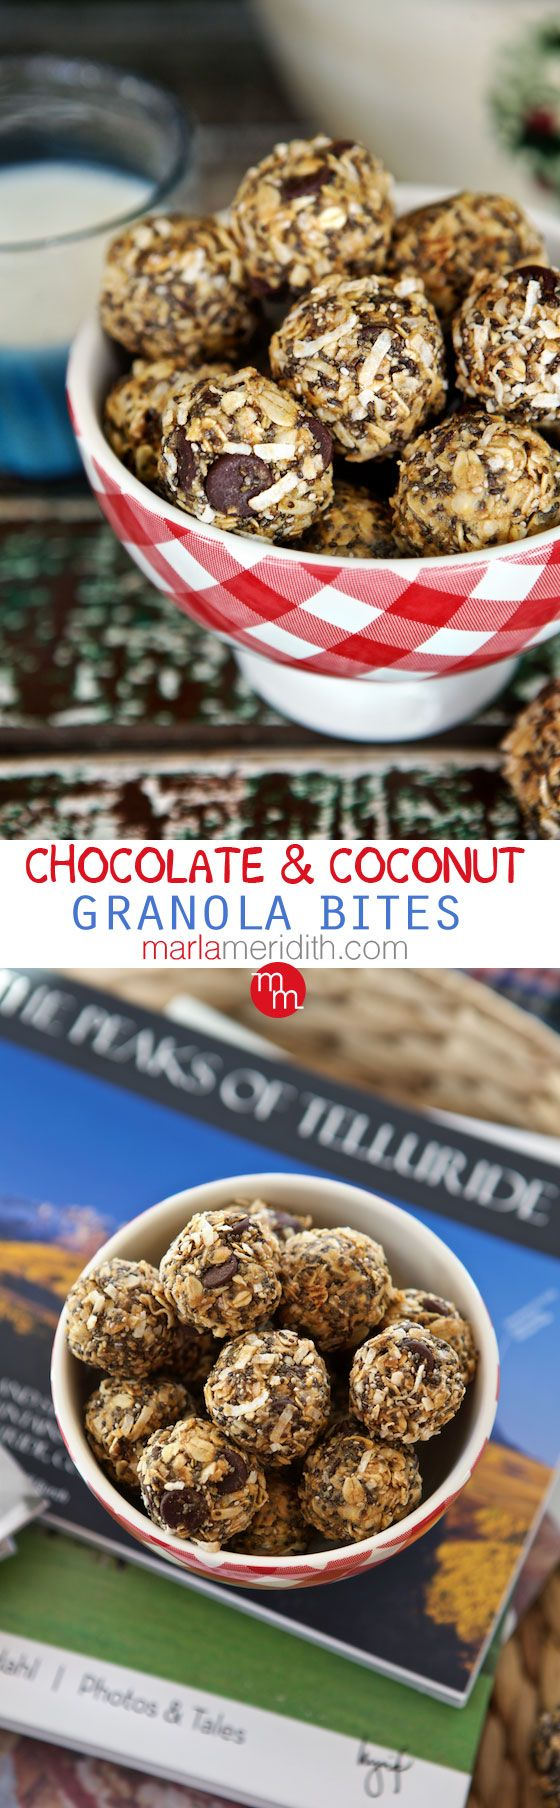 No-Bake Chocolate & Coconut Granola Bites | Kids lunchbox favorite! MarlaMeridith.com ( @MarlaMeridith )